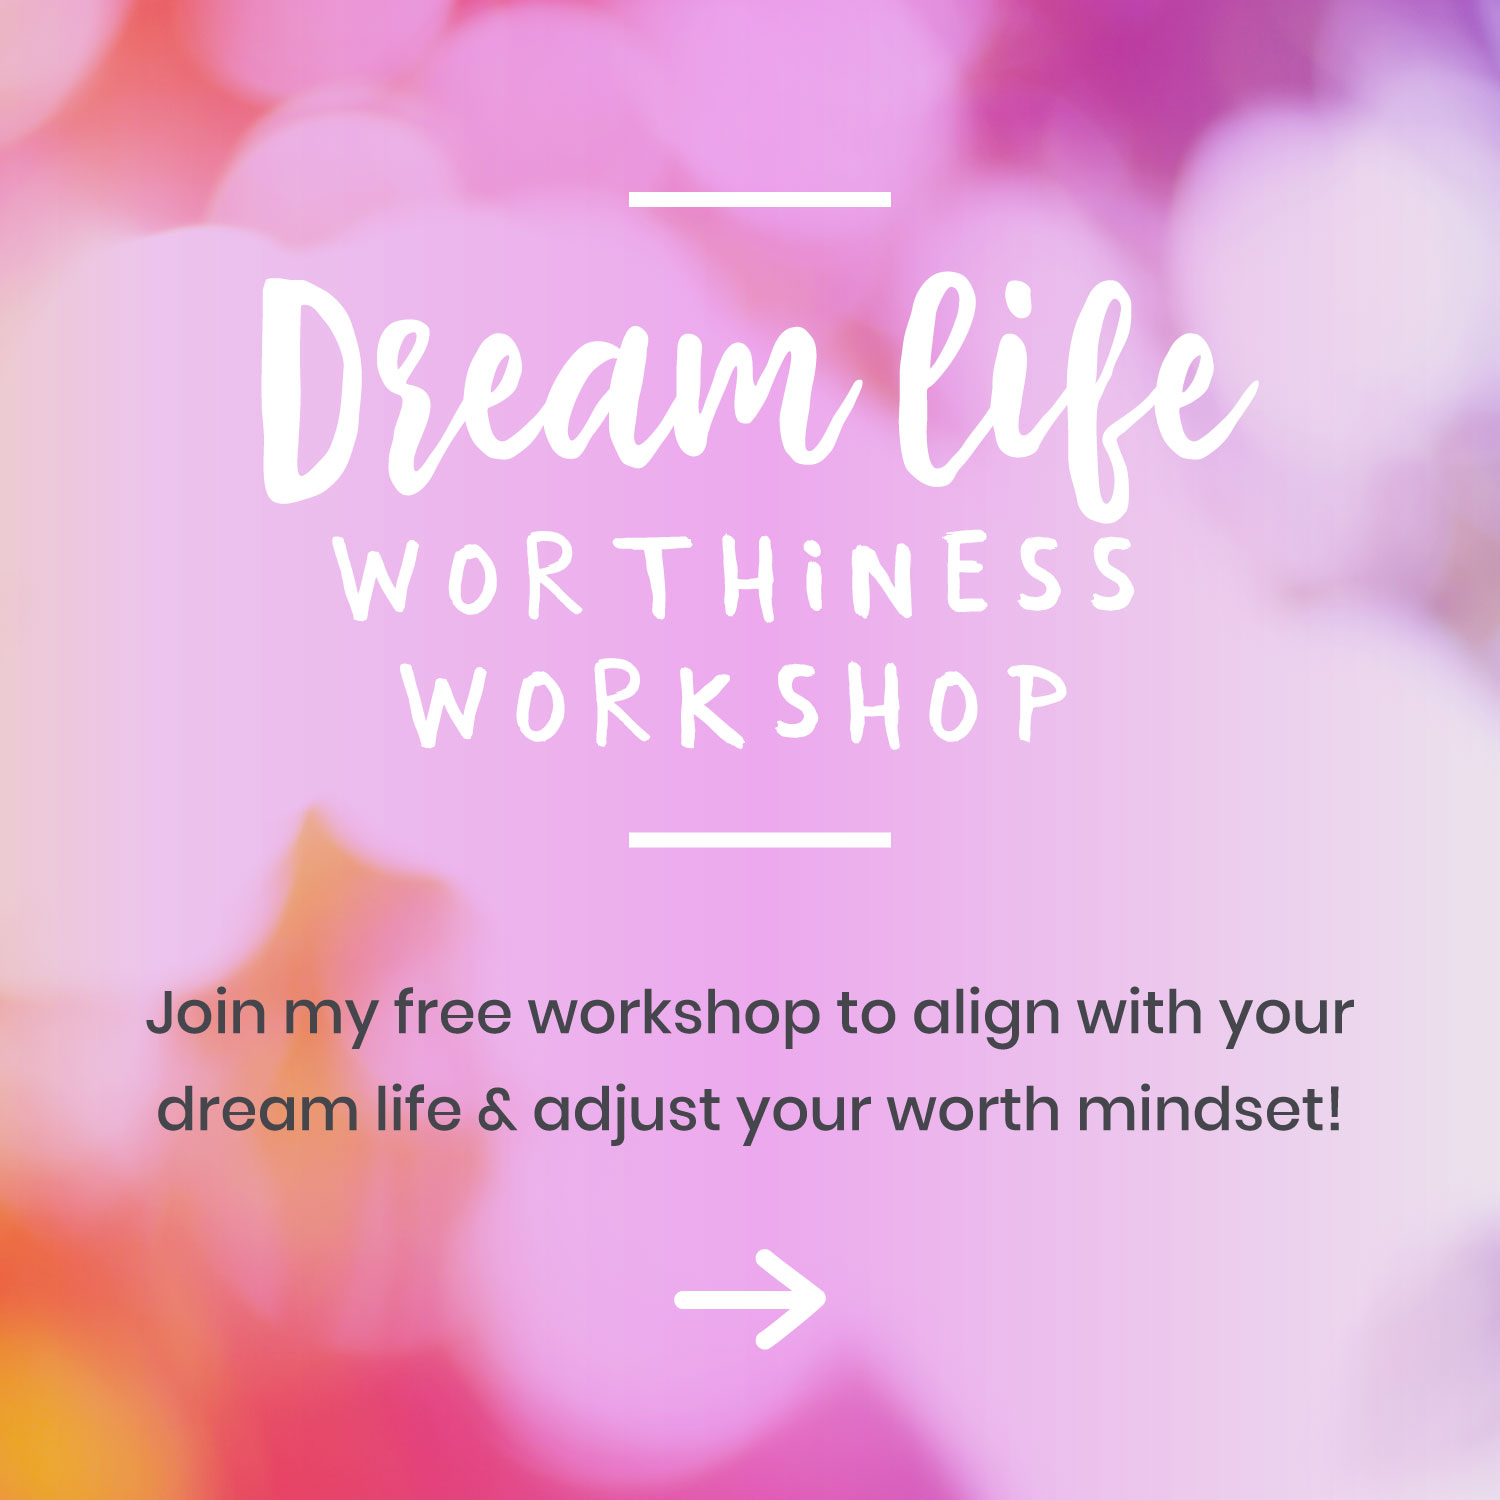 Join the Dream Life Worthiness Workshop